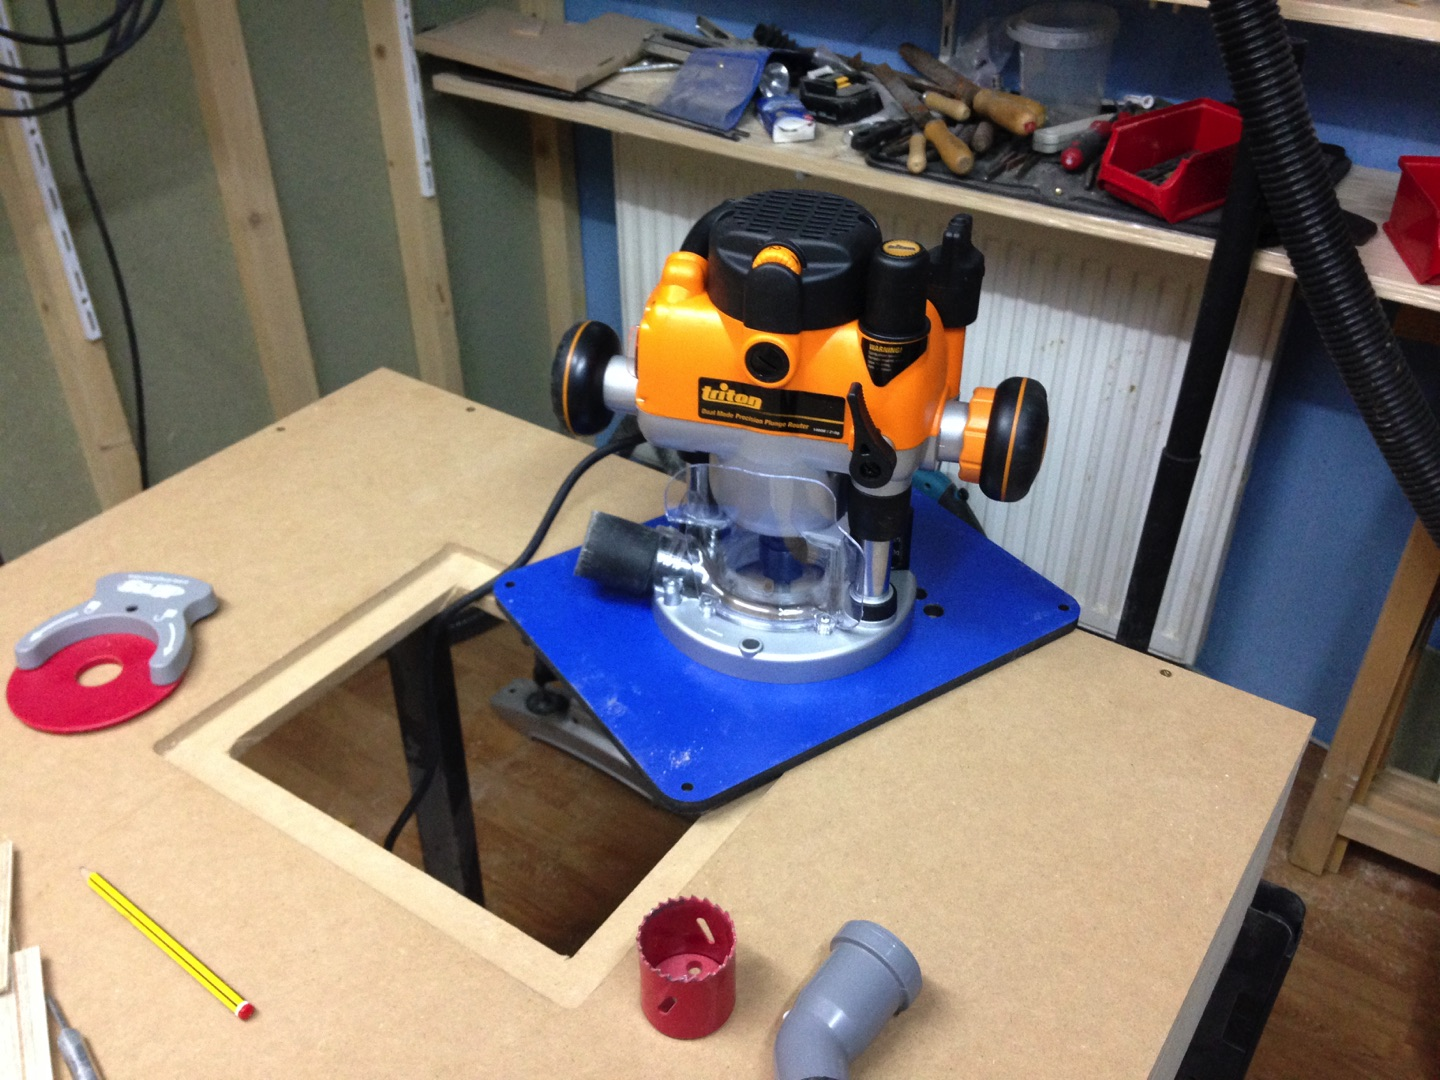 Table router triton tra001 sharenicethings your diy tech ressource snapshots greentooth Choice Image